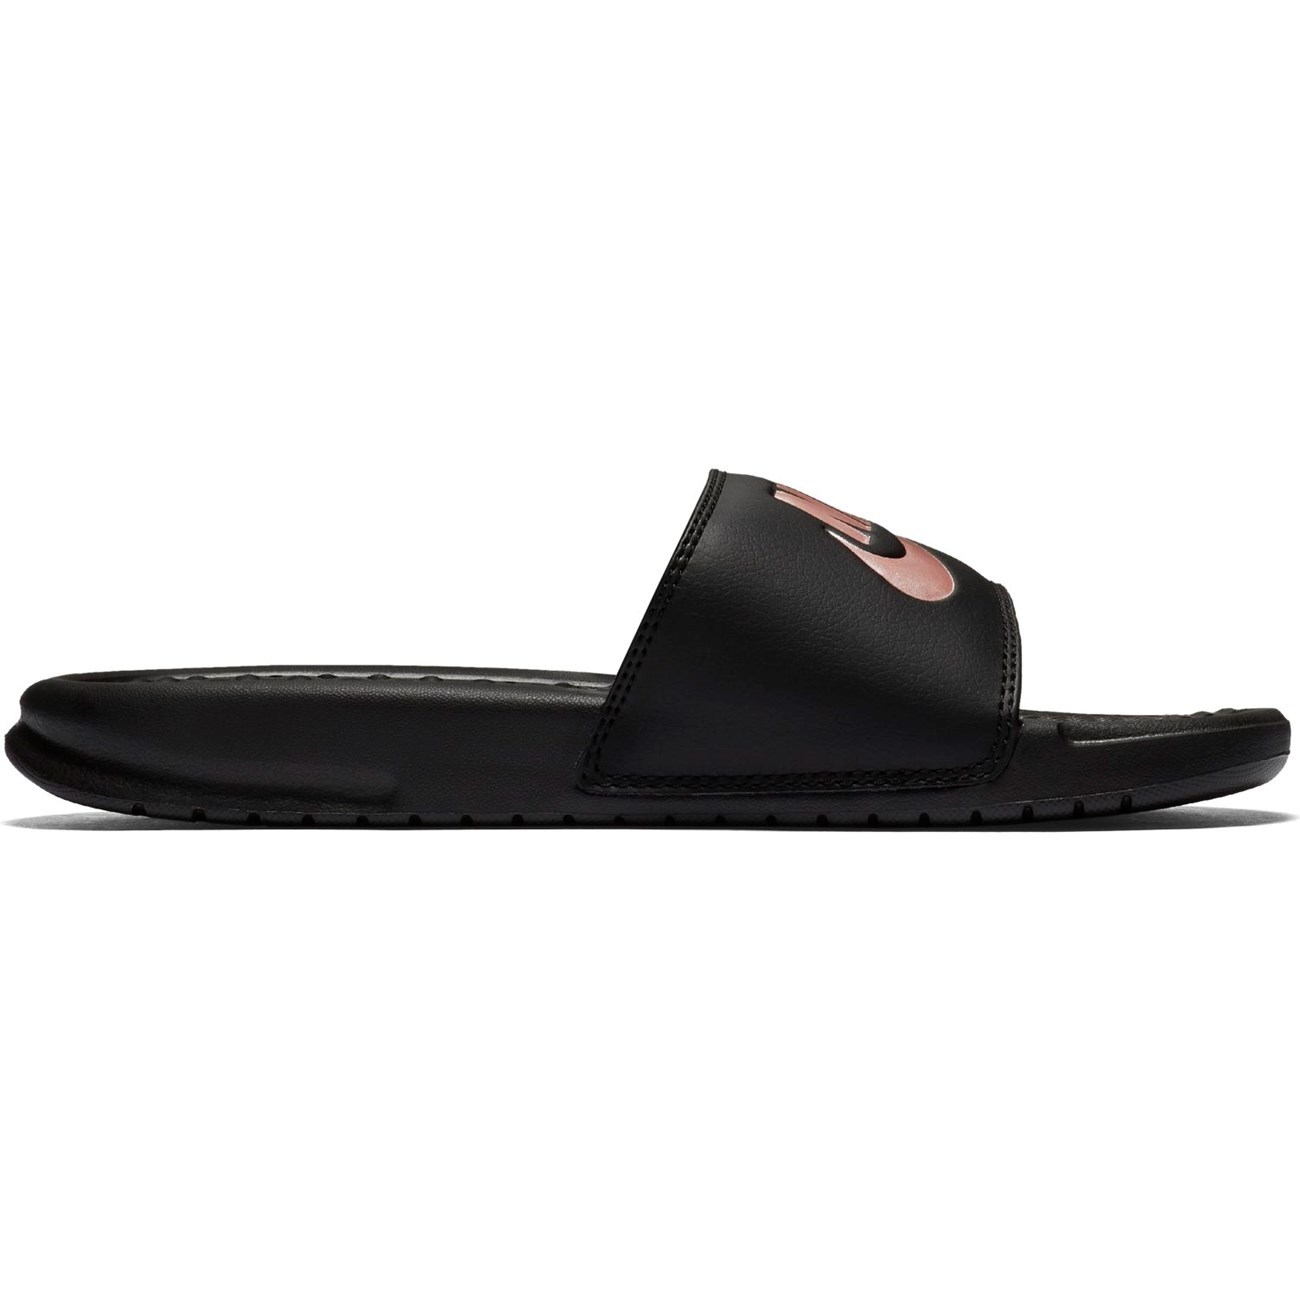 NIKE Σαγιονάρες BENASSI Just Do It 343881-007 - INTERSPORT